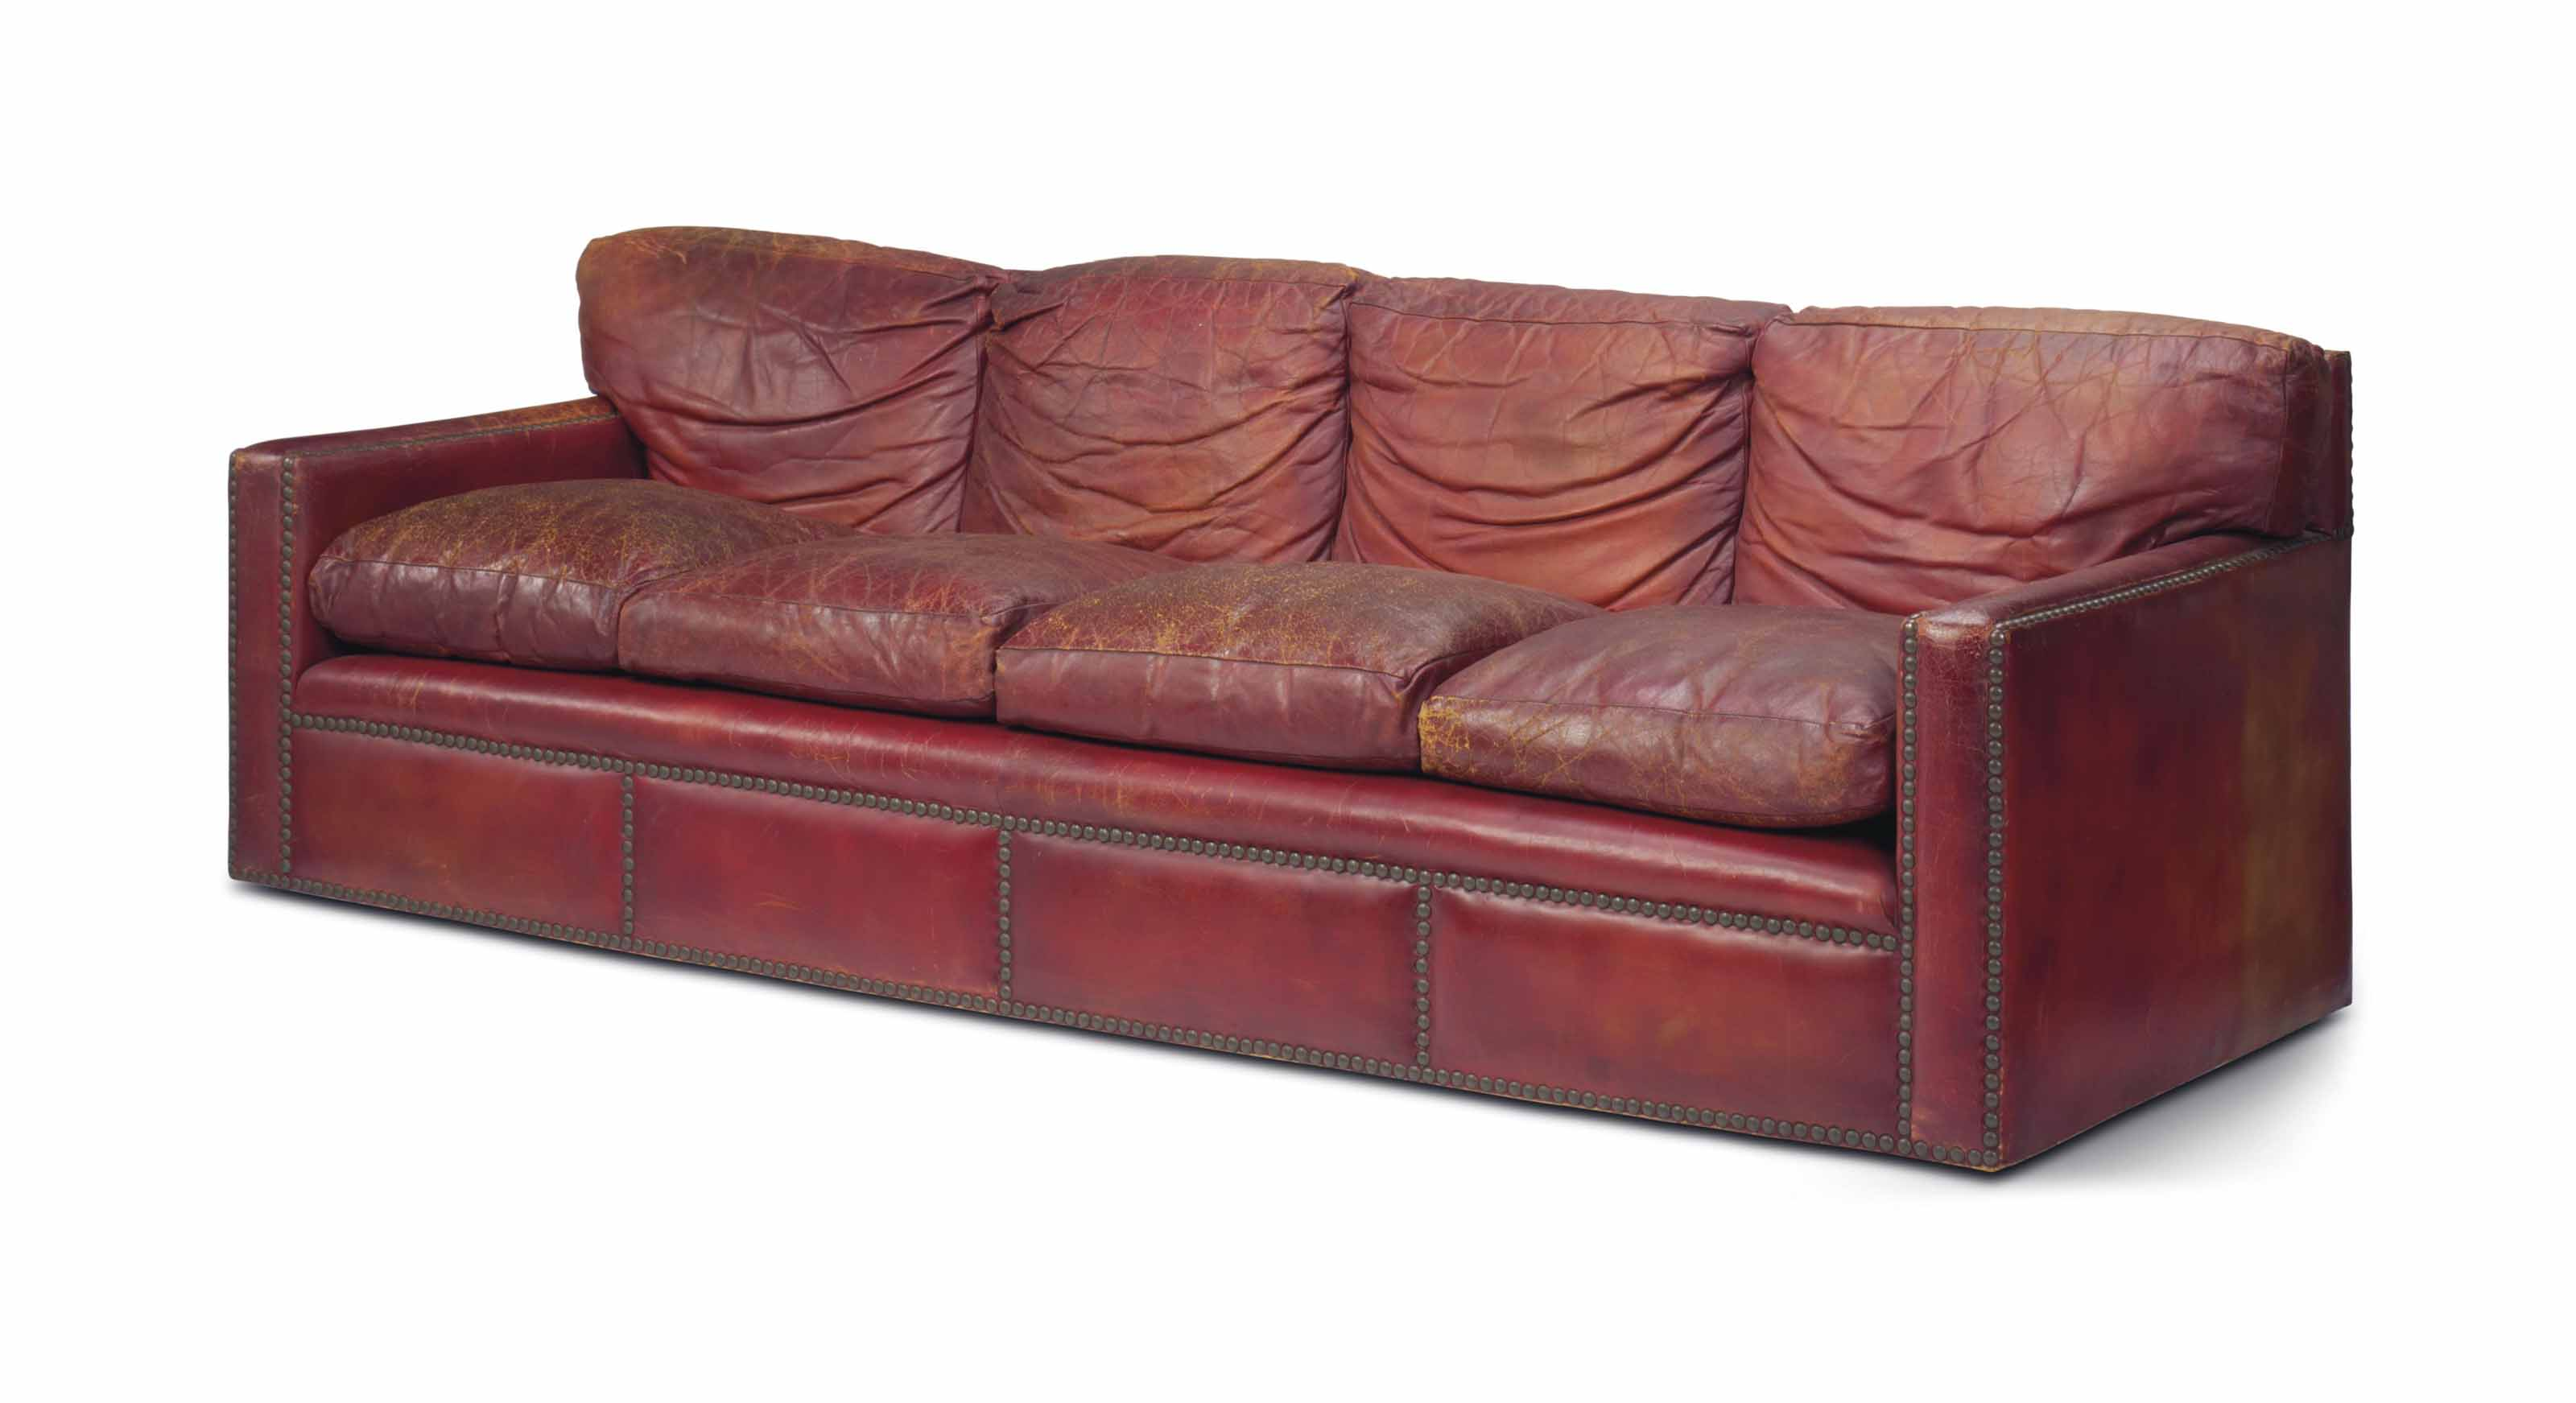 A Red Leather Closed Nail Upholstered Sofa 20th Century